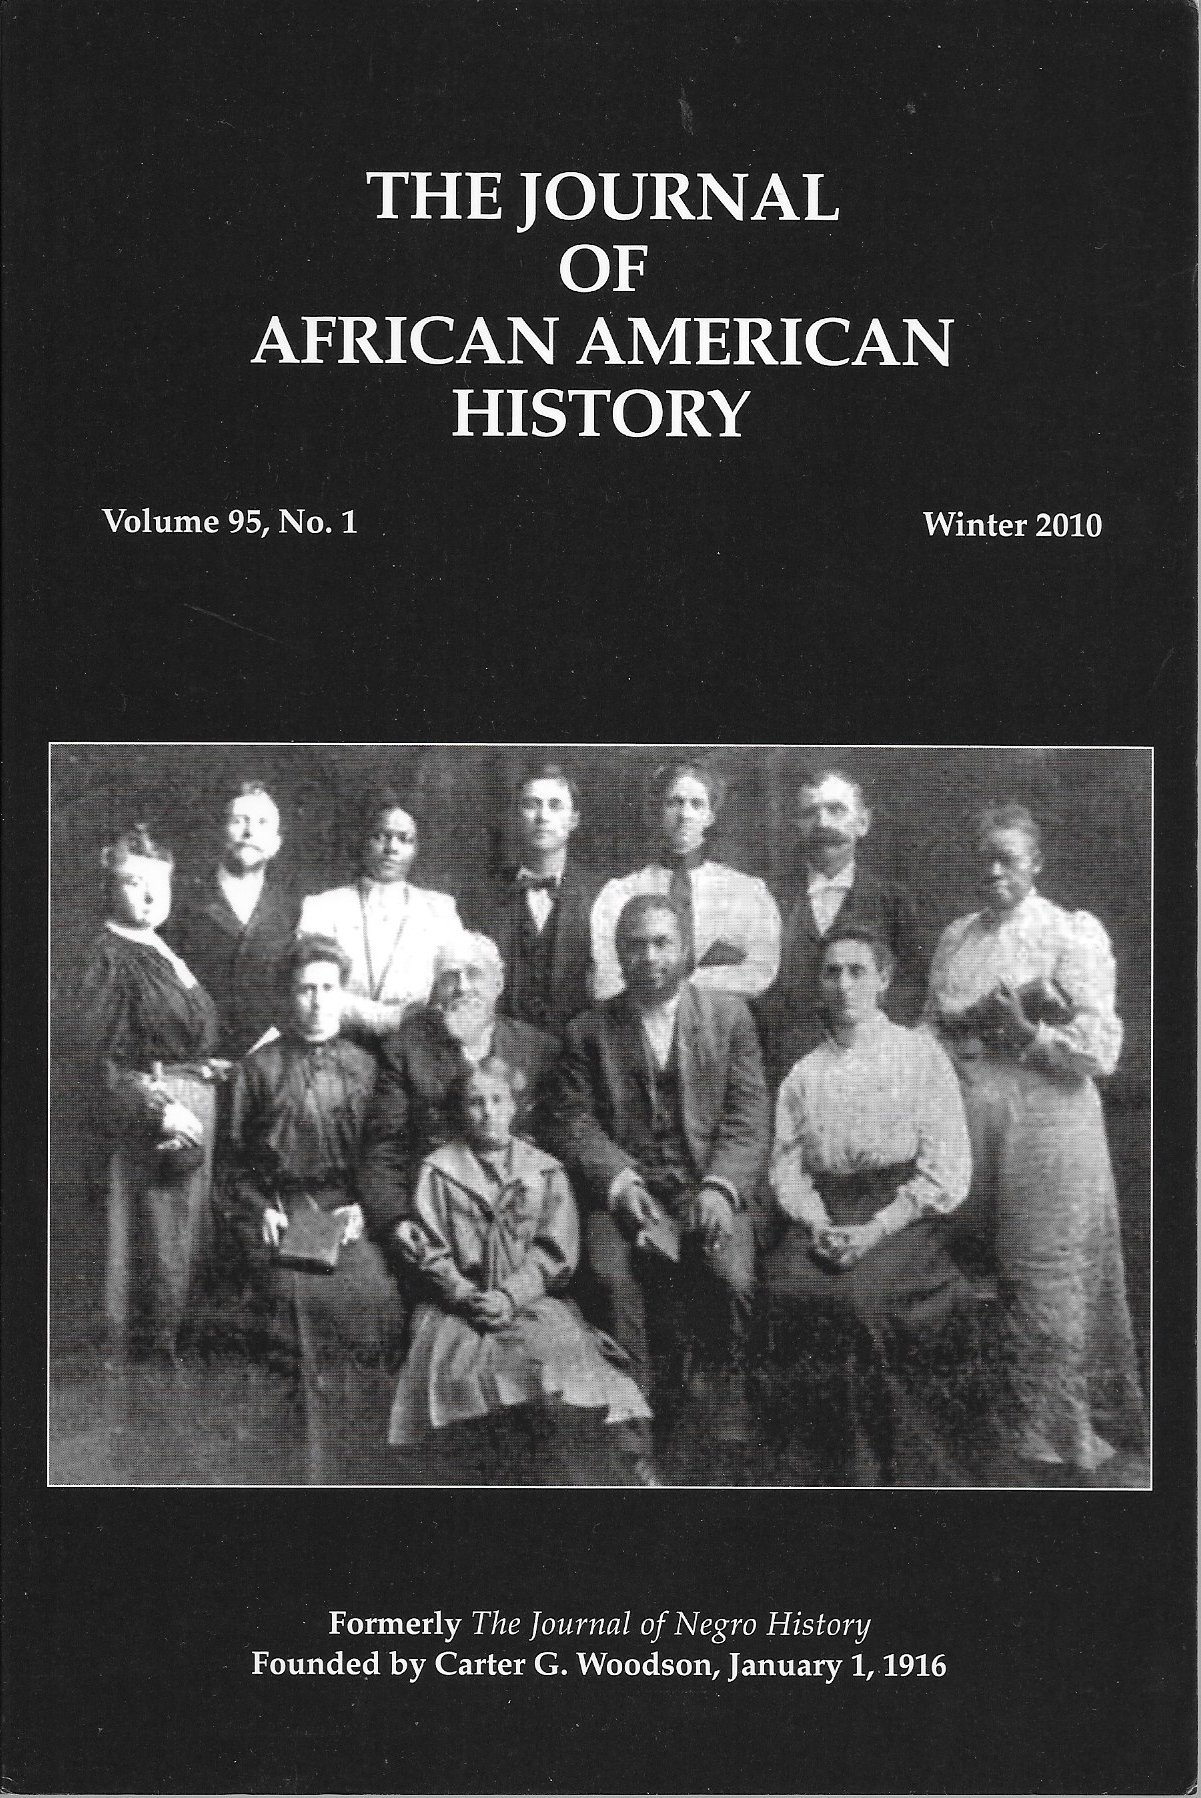 Journal Cover - Title in white lettering above and black-and-white photograph of a group of people against a black background.